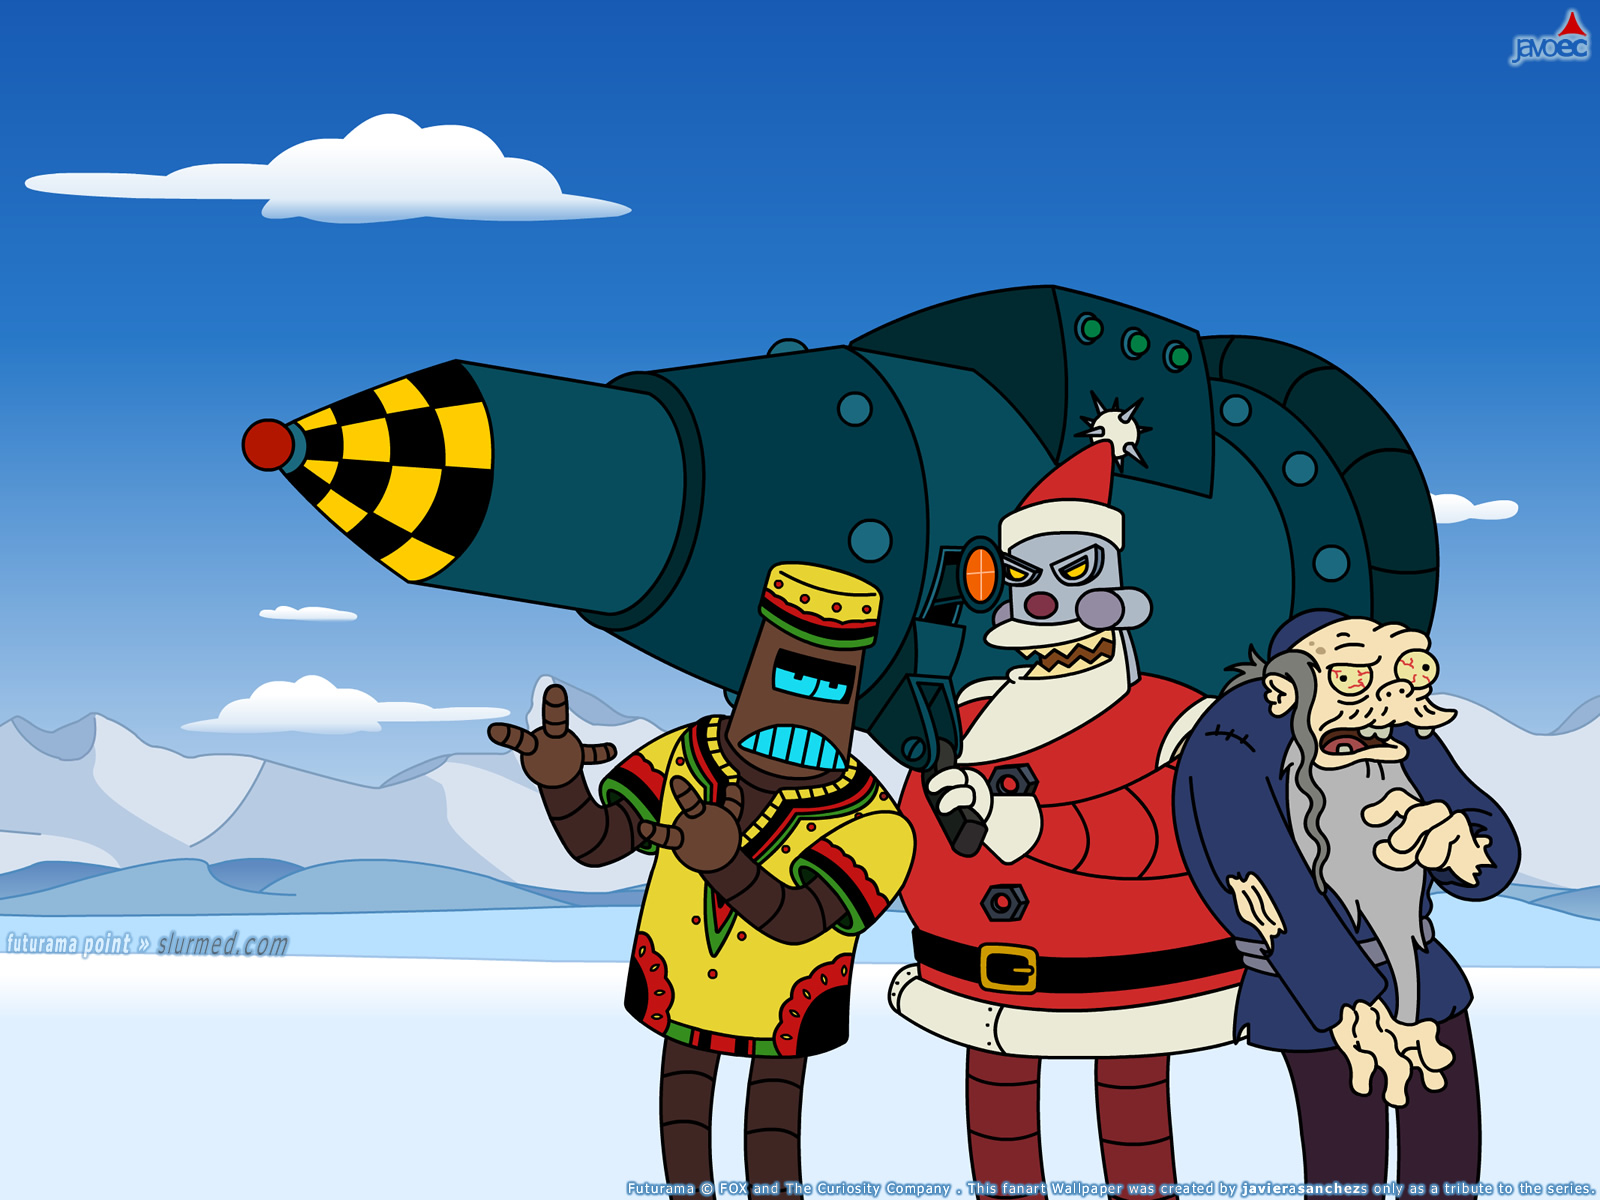 The Final Futurama Christmas Episode Isn't As Entertaining As The Previous  Two, Its Split In To Parts To Tell The Story Of Different Holidays And How  The